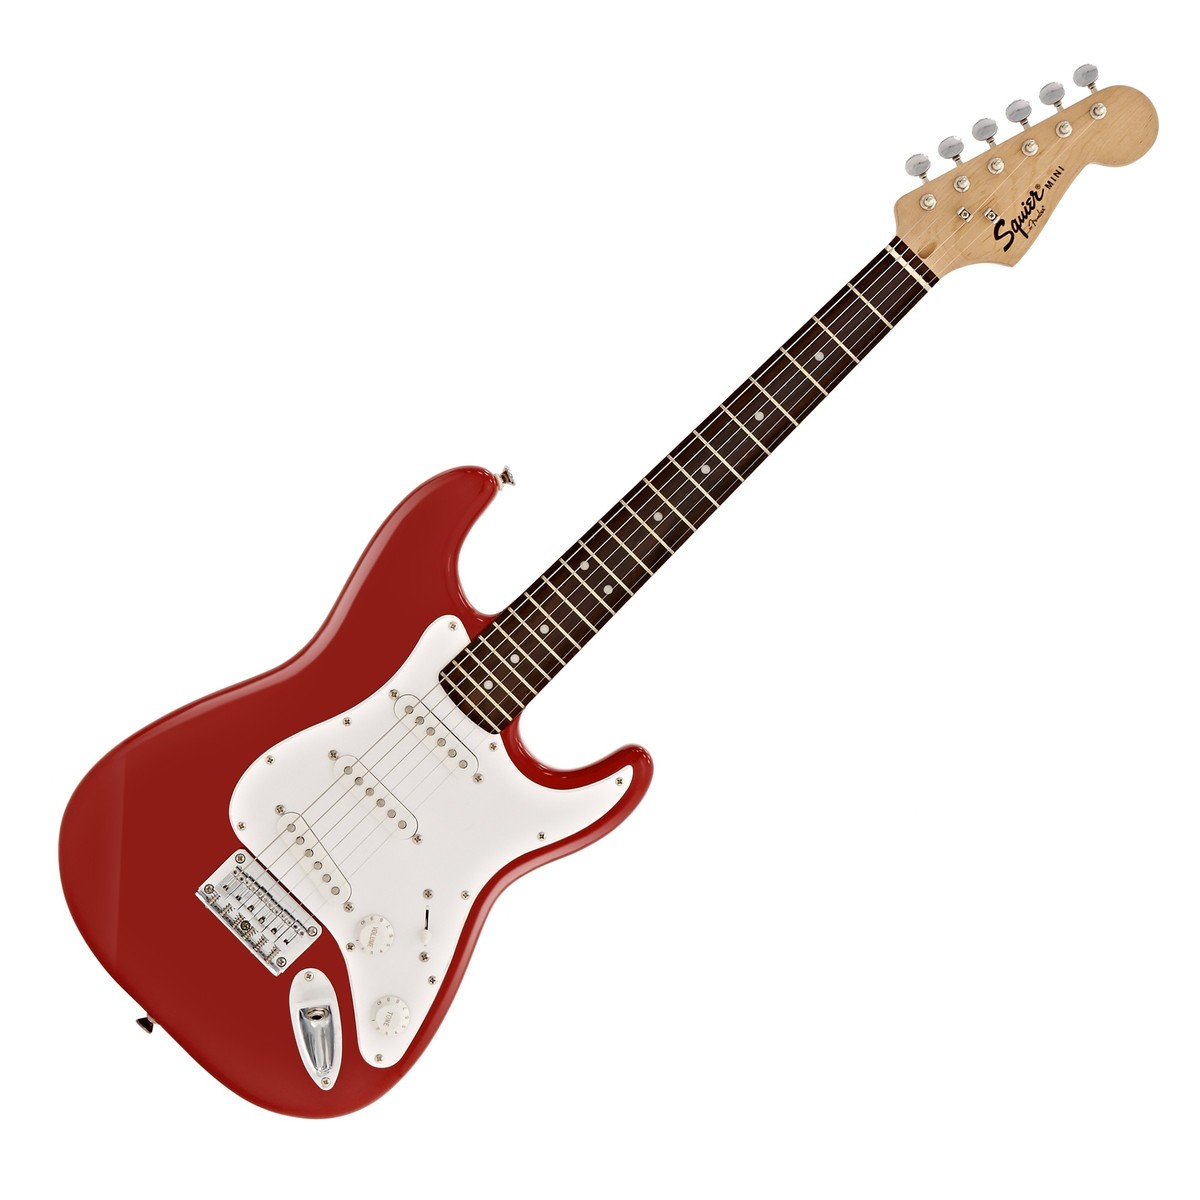 squier by fender mini stratocaster 3 4 size electric guitar red at. Black Bedroom Furniture Sets. Home Design Ideas